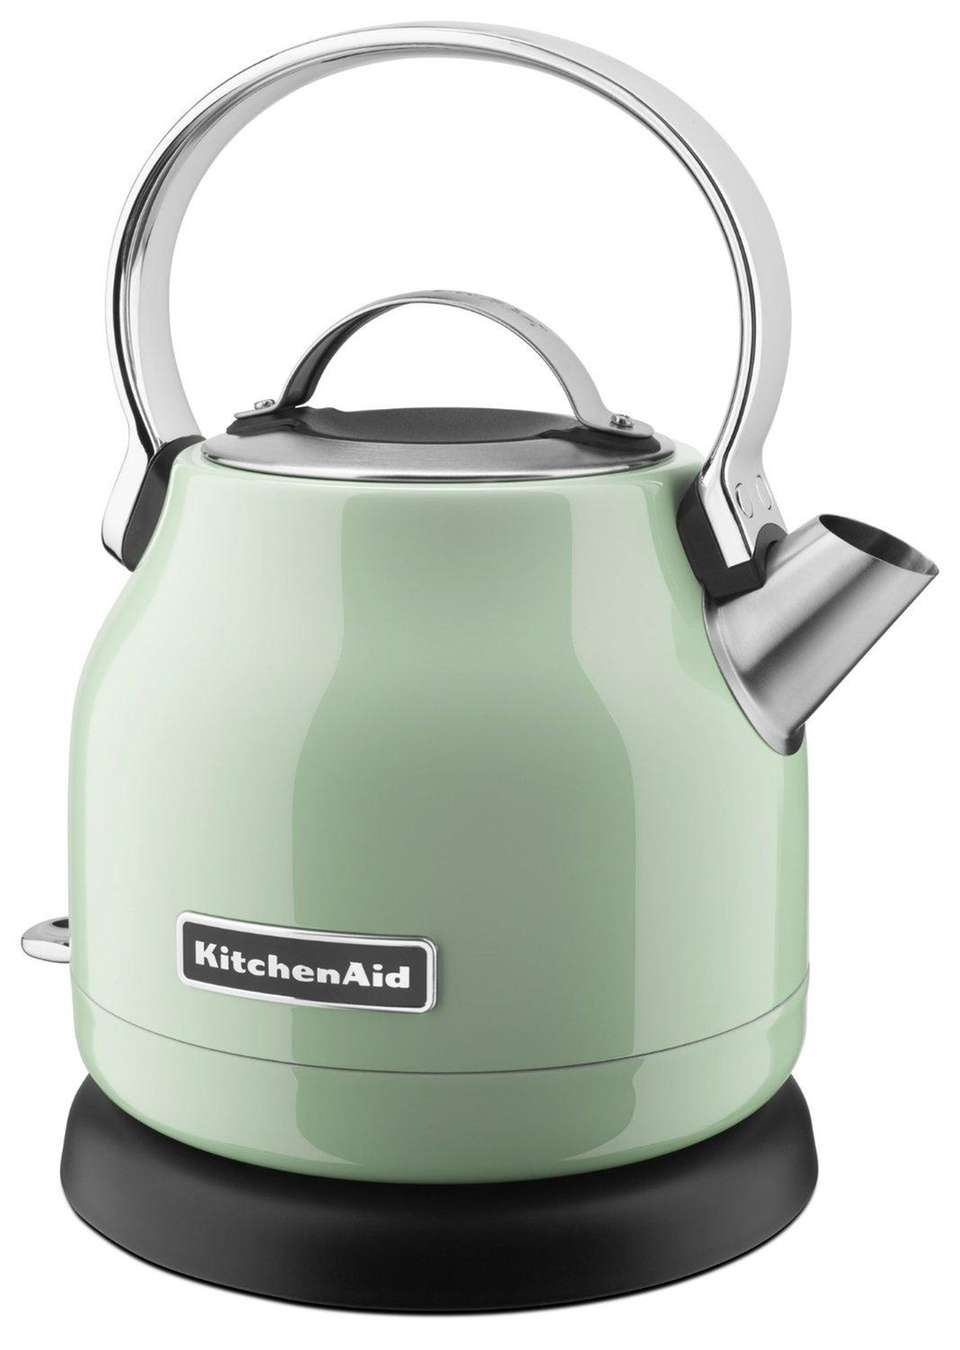 Boil water in minutes with the Kitchen Aid